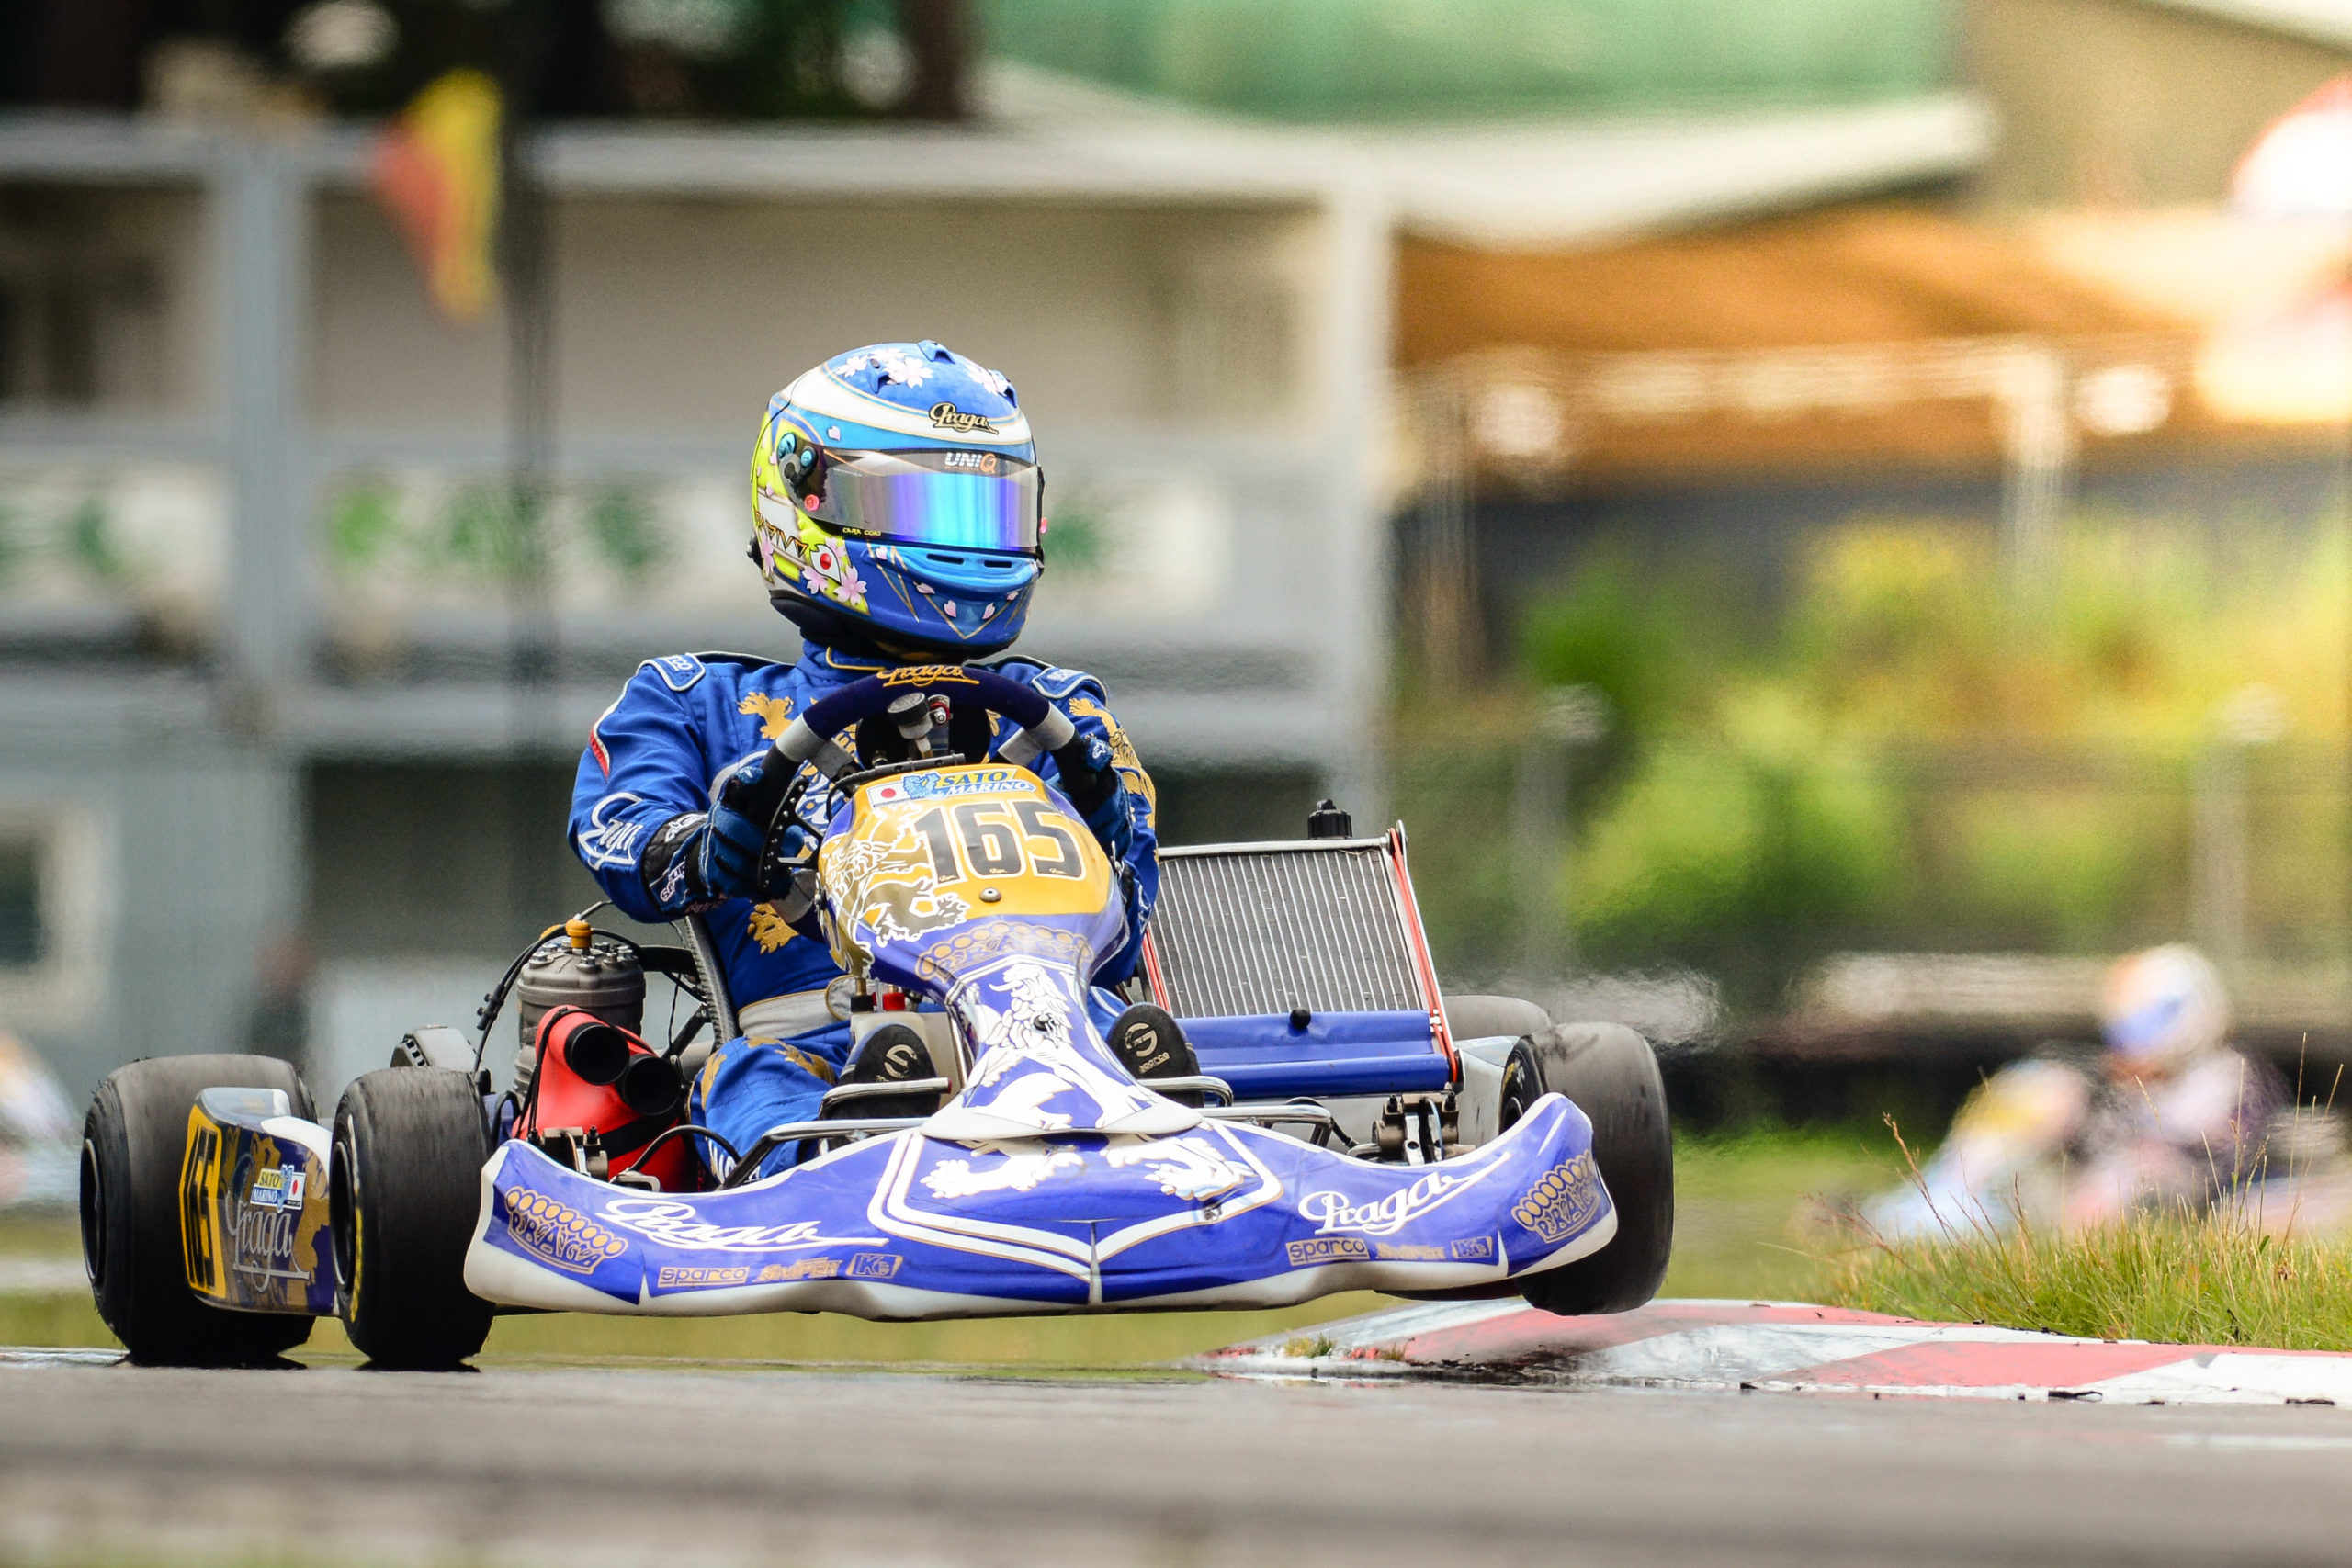 Unfortunate weekend for Praga Kart Racing